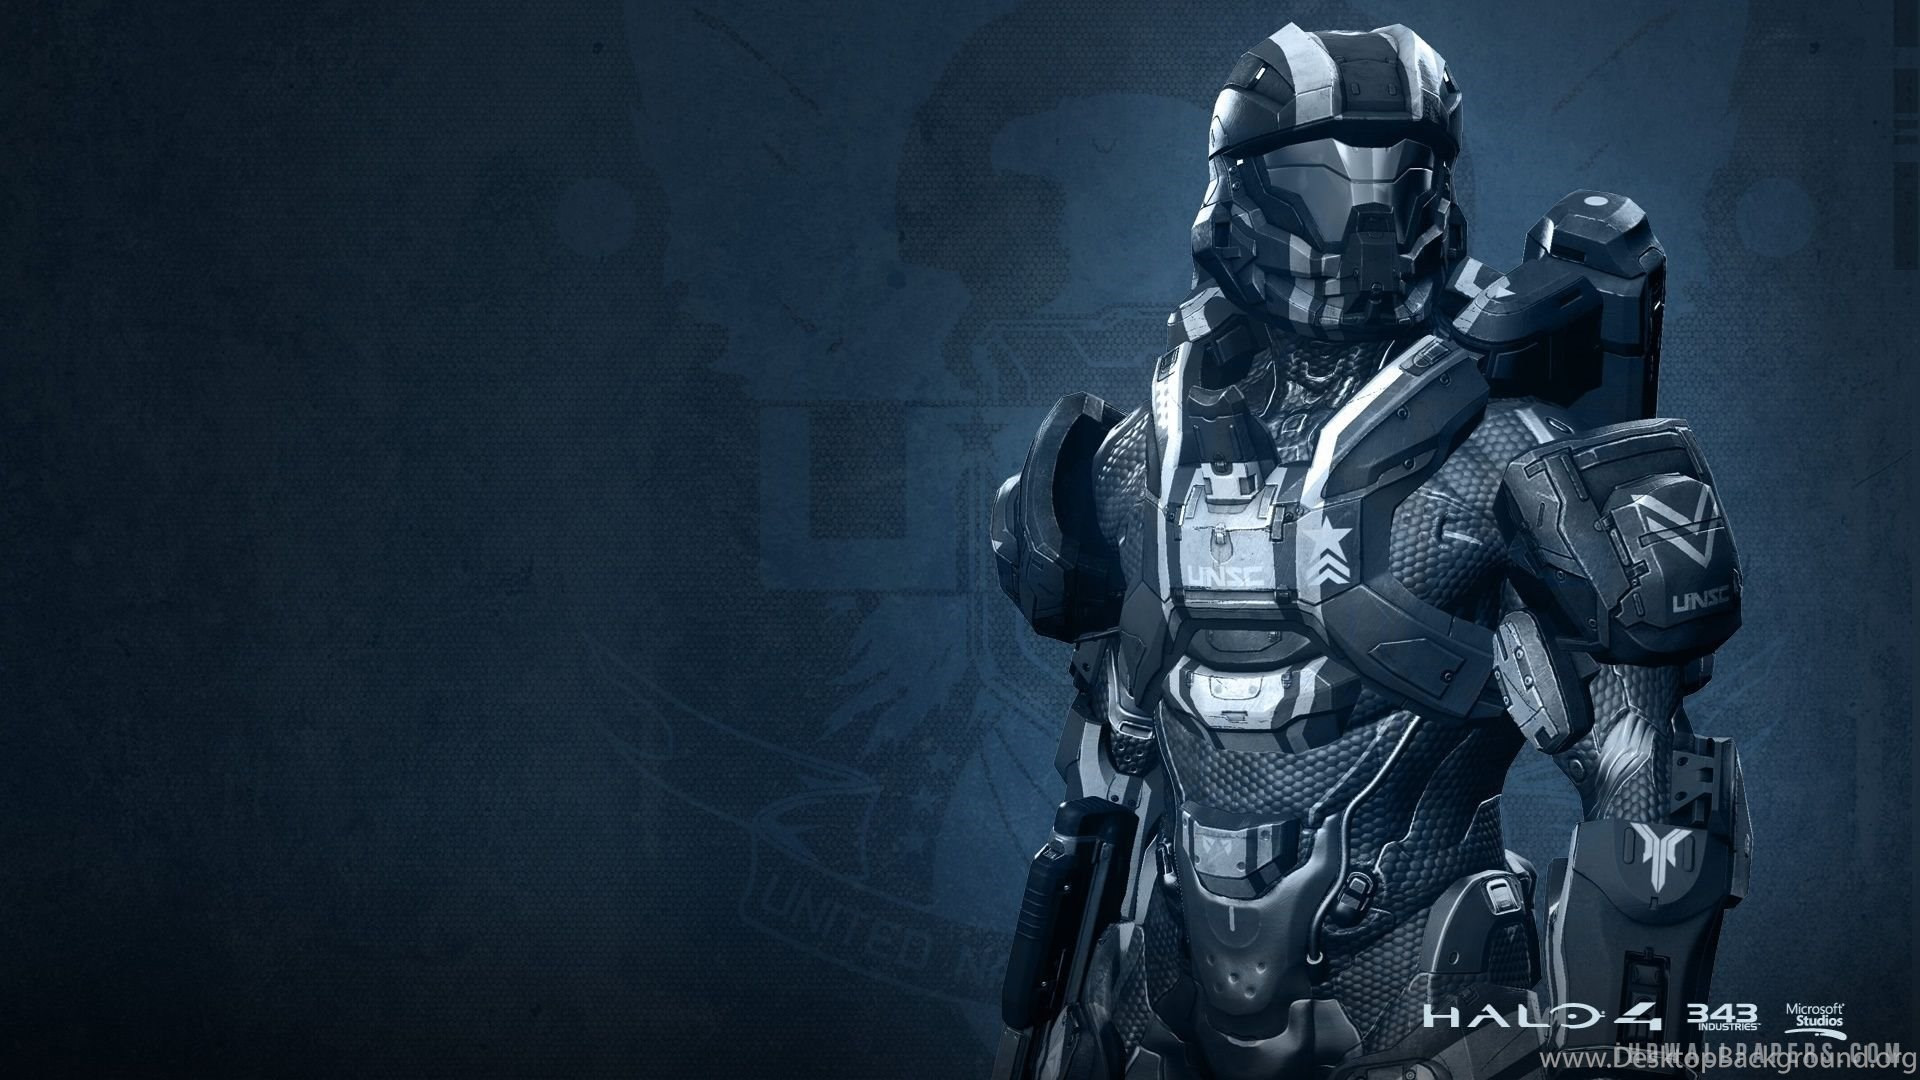 Halo 5 Master Chief Hd Backgrounds Wallpapers Attachment 14112